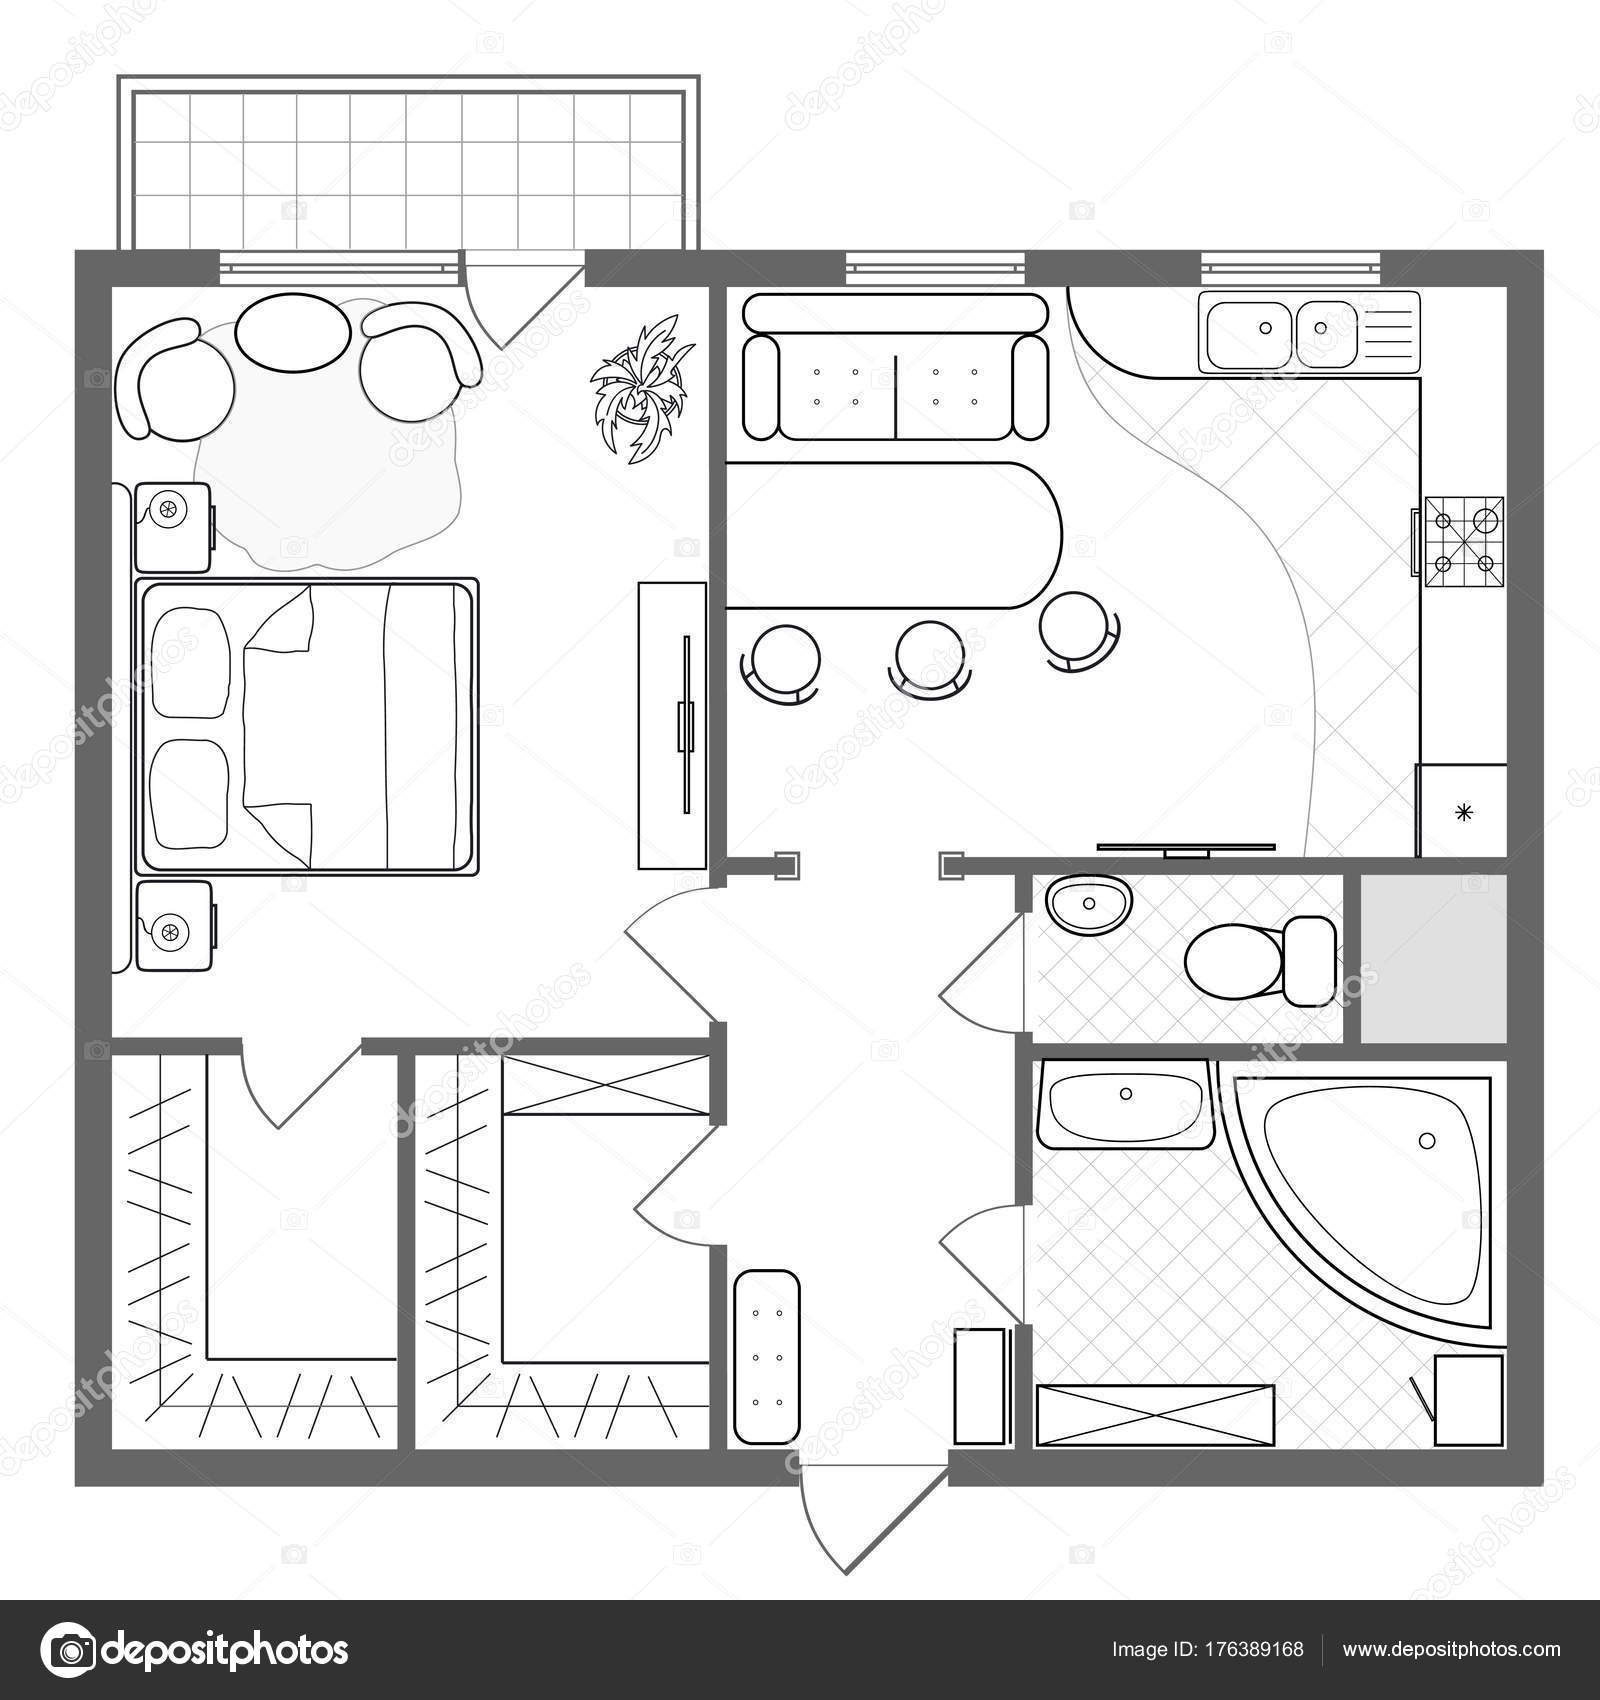 Architectural plan of a house professional layout of the apartment architectural plan of a house professional layout of the apartment with the furniture in the drawing malvernweather